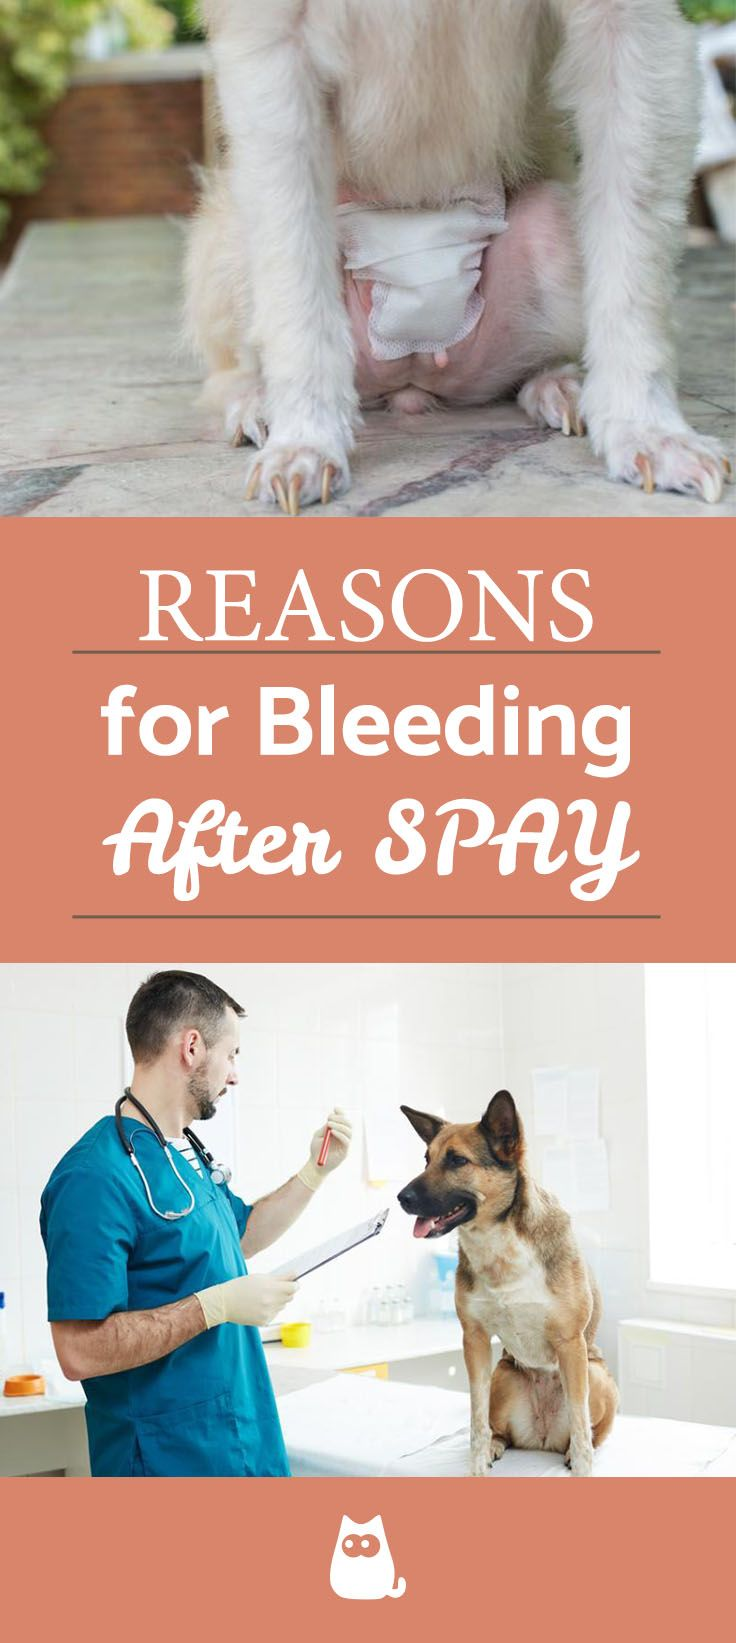 Dog Bleeding After Spay Causes And Treatment In 2020 Dog Treatment Dog Spay Spay